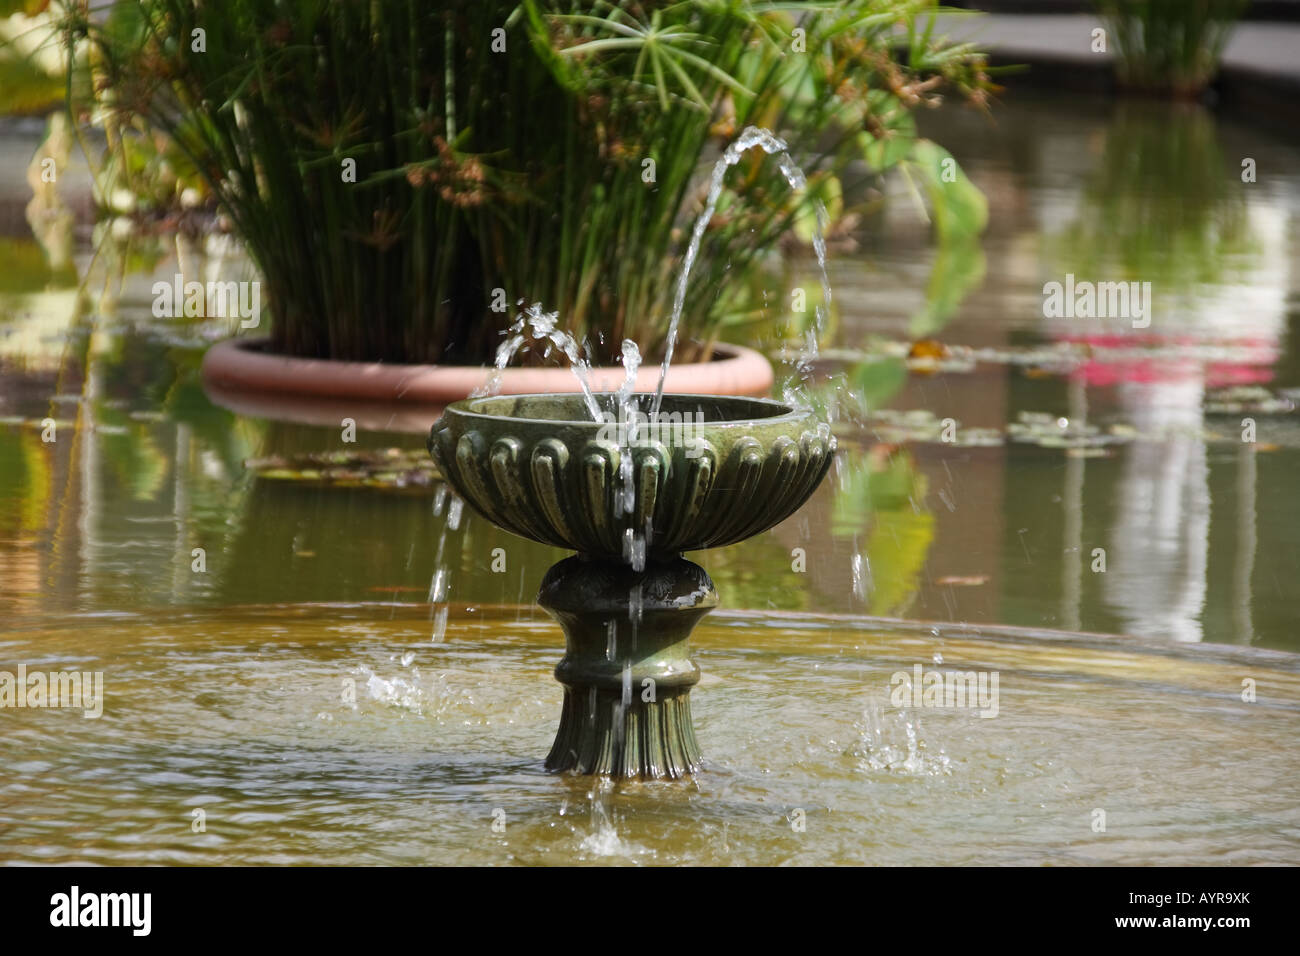 Water fountains auckland - An Antique Style Fountain Splashing Water In The Winter Garden Auckland